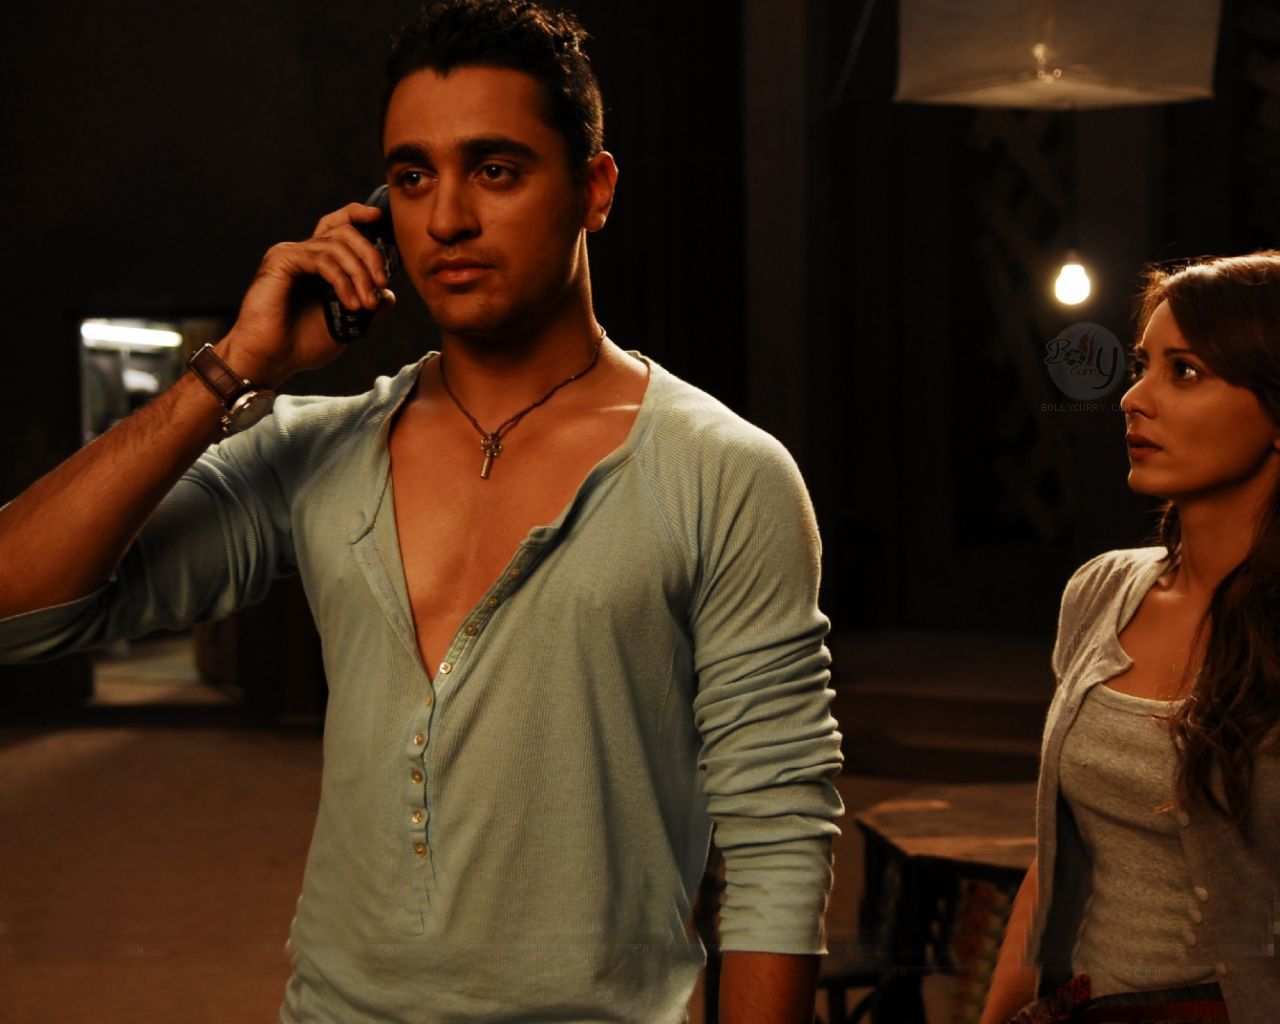 Naked Passion Girl Hd Wallpapers Of Bollywood Movie Kidnap-2837